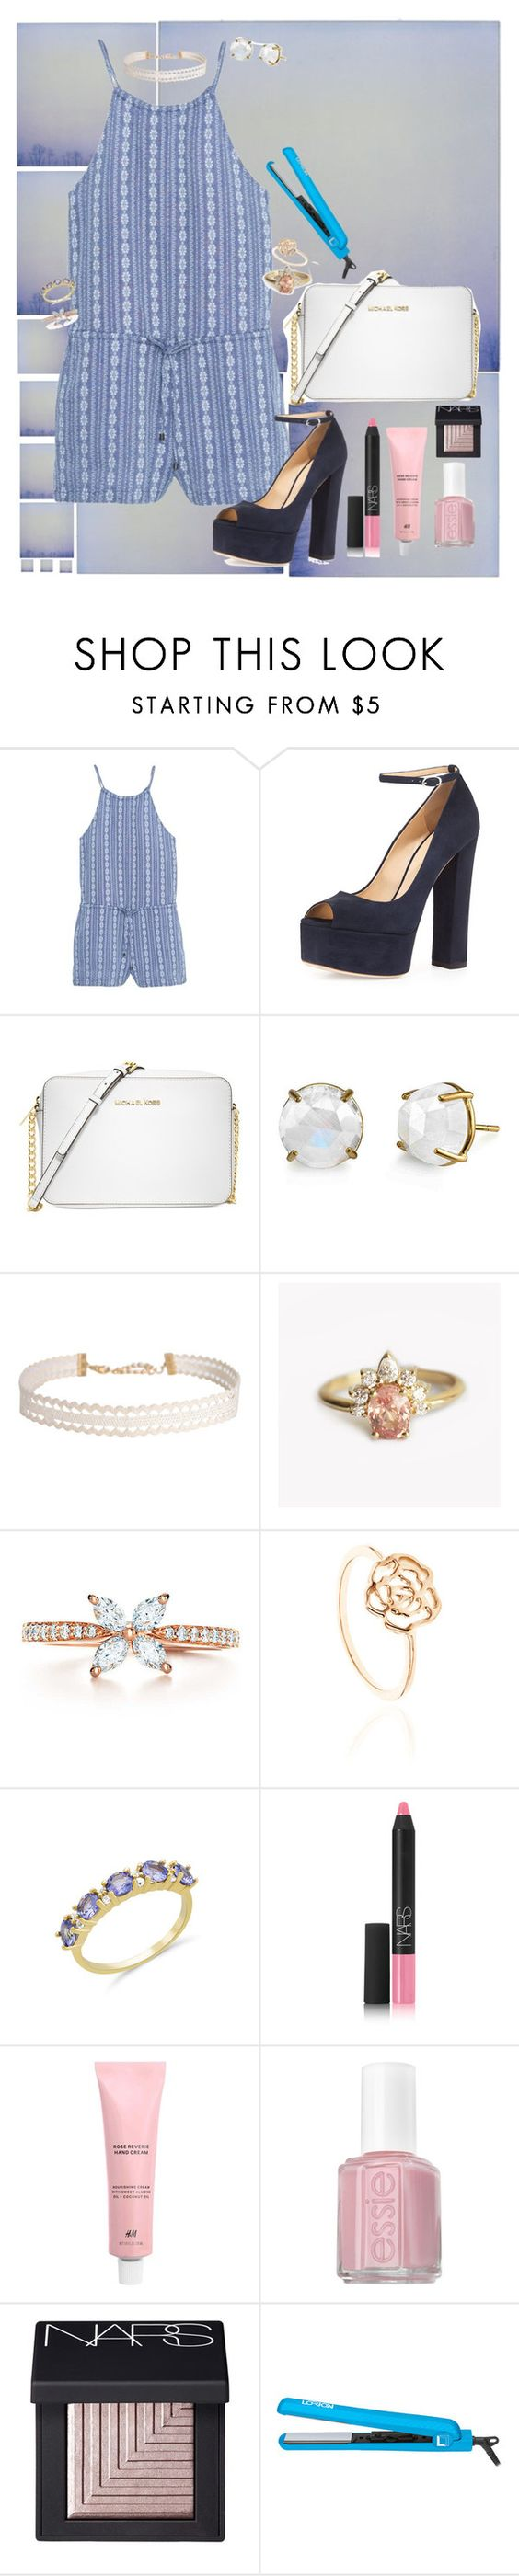 """""""You Make Me Feel Better"""" by kittypom ❤ liked on Polyvore featuring MANGO, Giuseppe Zanotti, Michael Kors, Irene Neuwirth, Humble Chic, Tiffany & Co., Ambre & Louise, NARS Cosmetics, Essie and Lorion"""